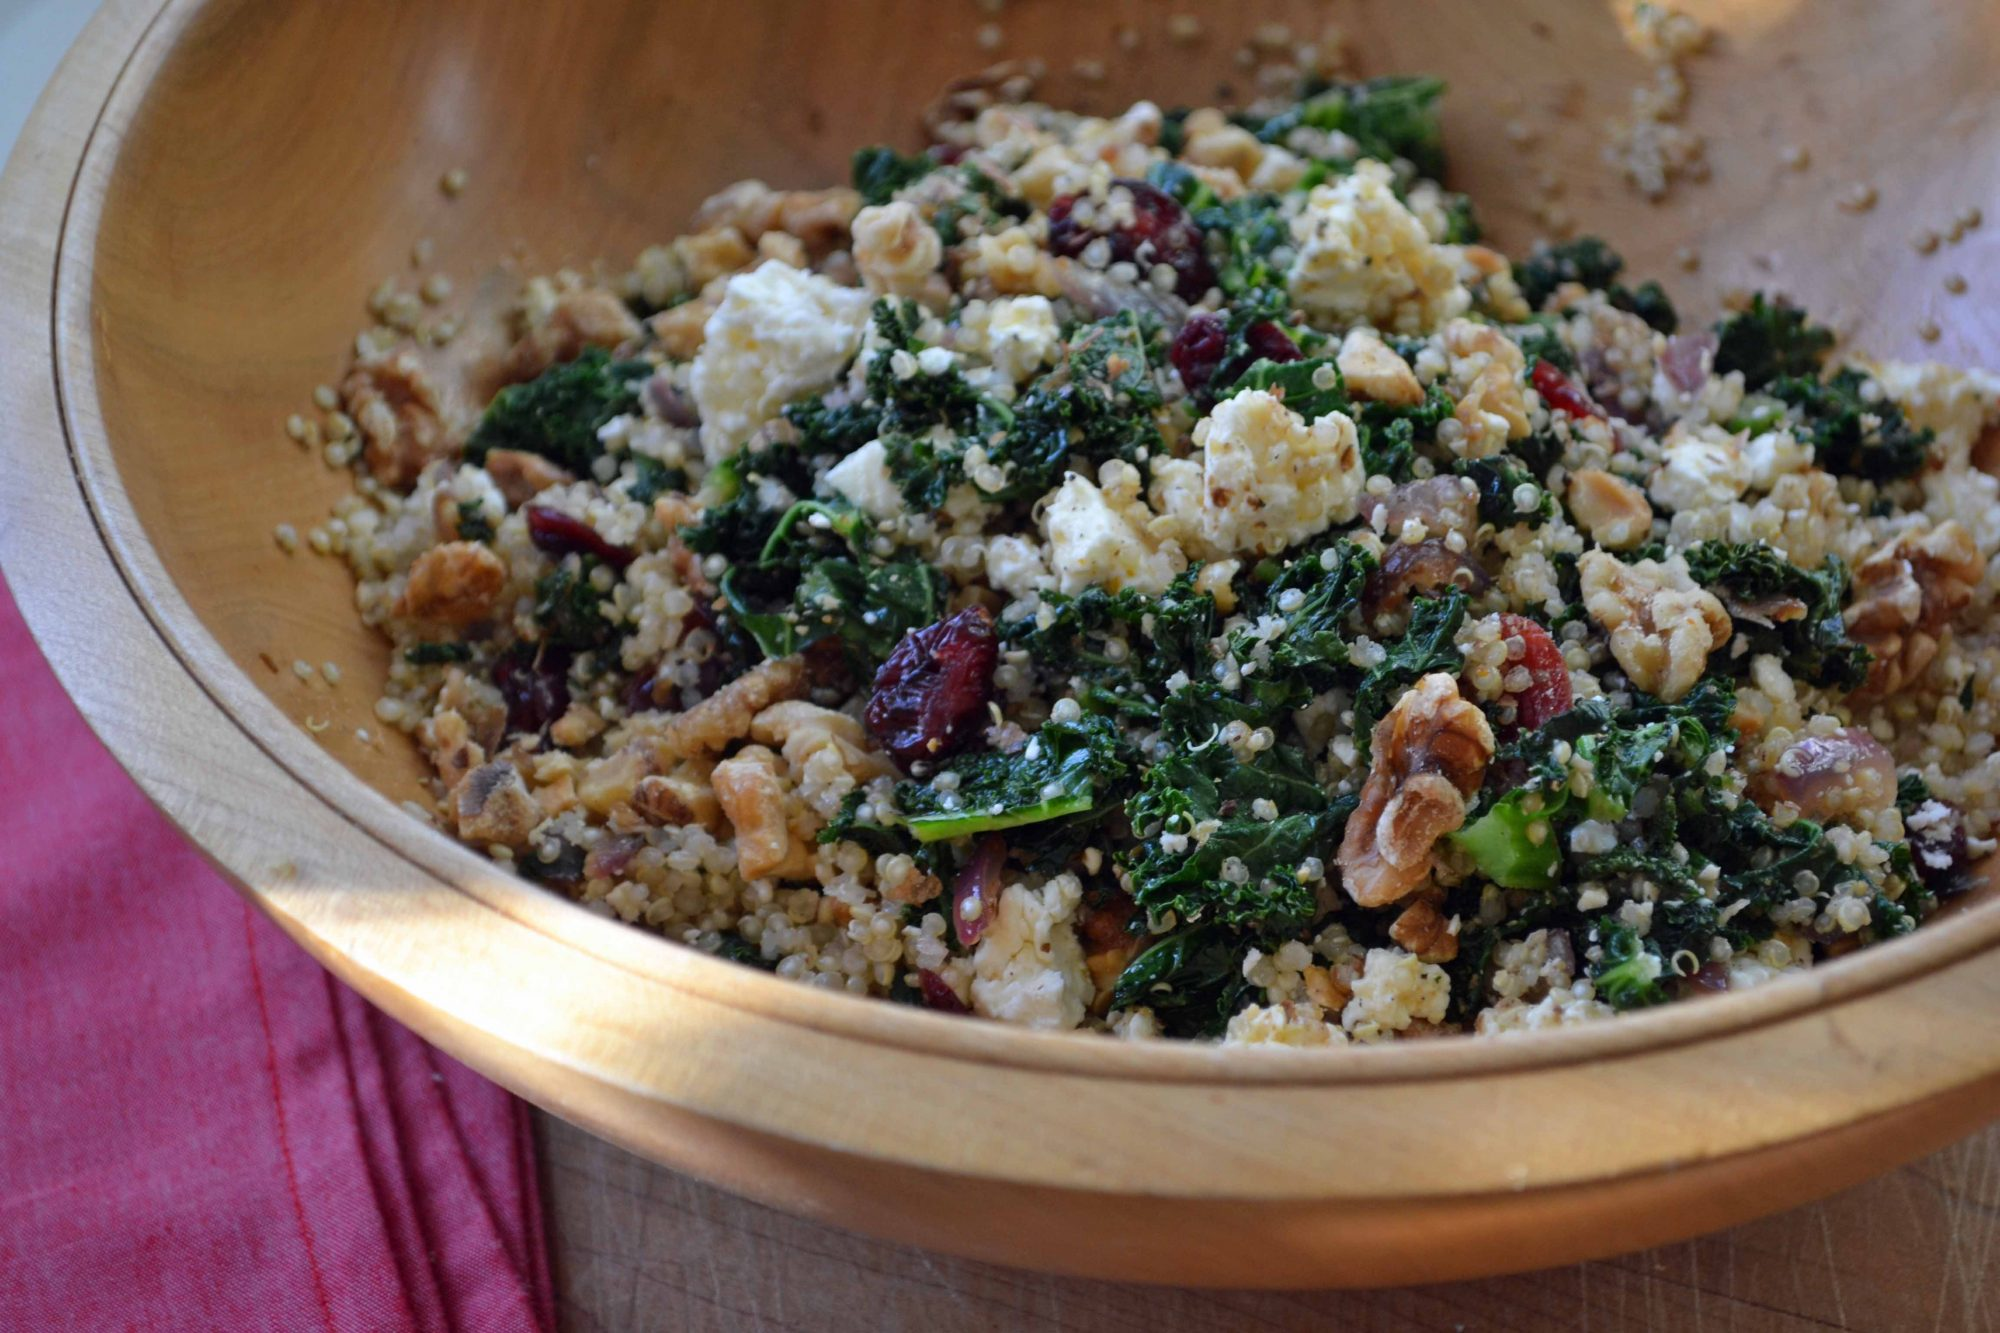 Kale and quinoa salad with cranberries and feta dinner with julie kale and quinoa salad with cranberries and feta recipe link forumfinder Images